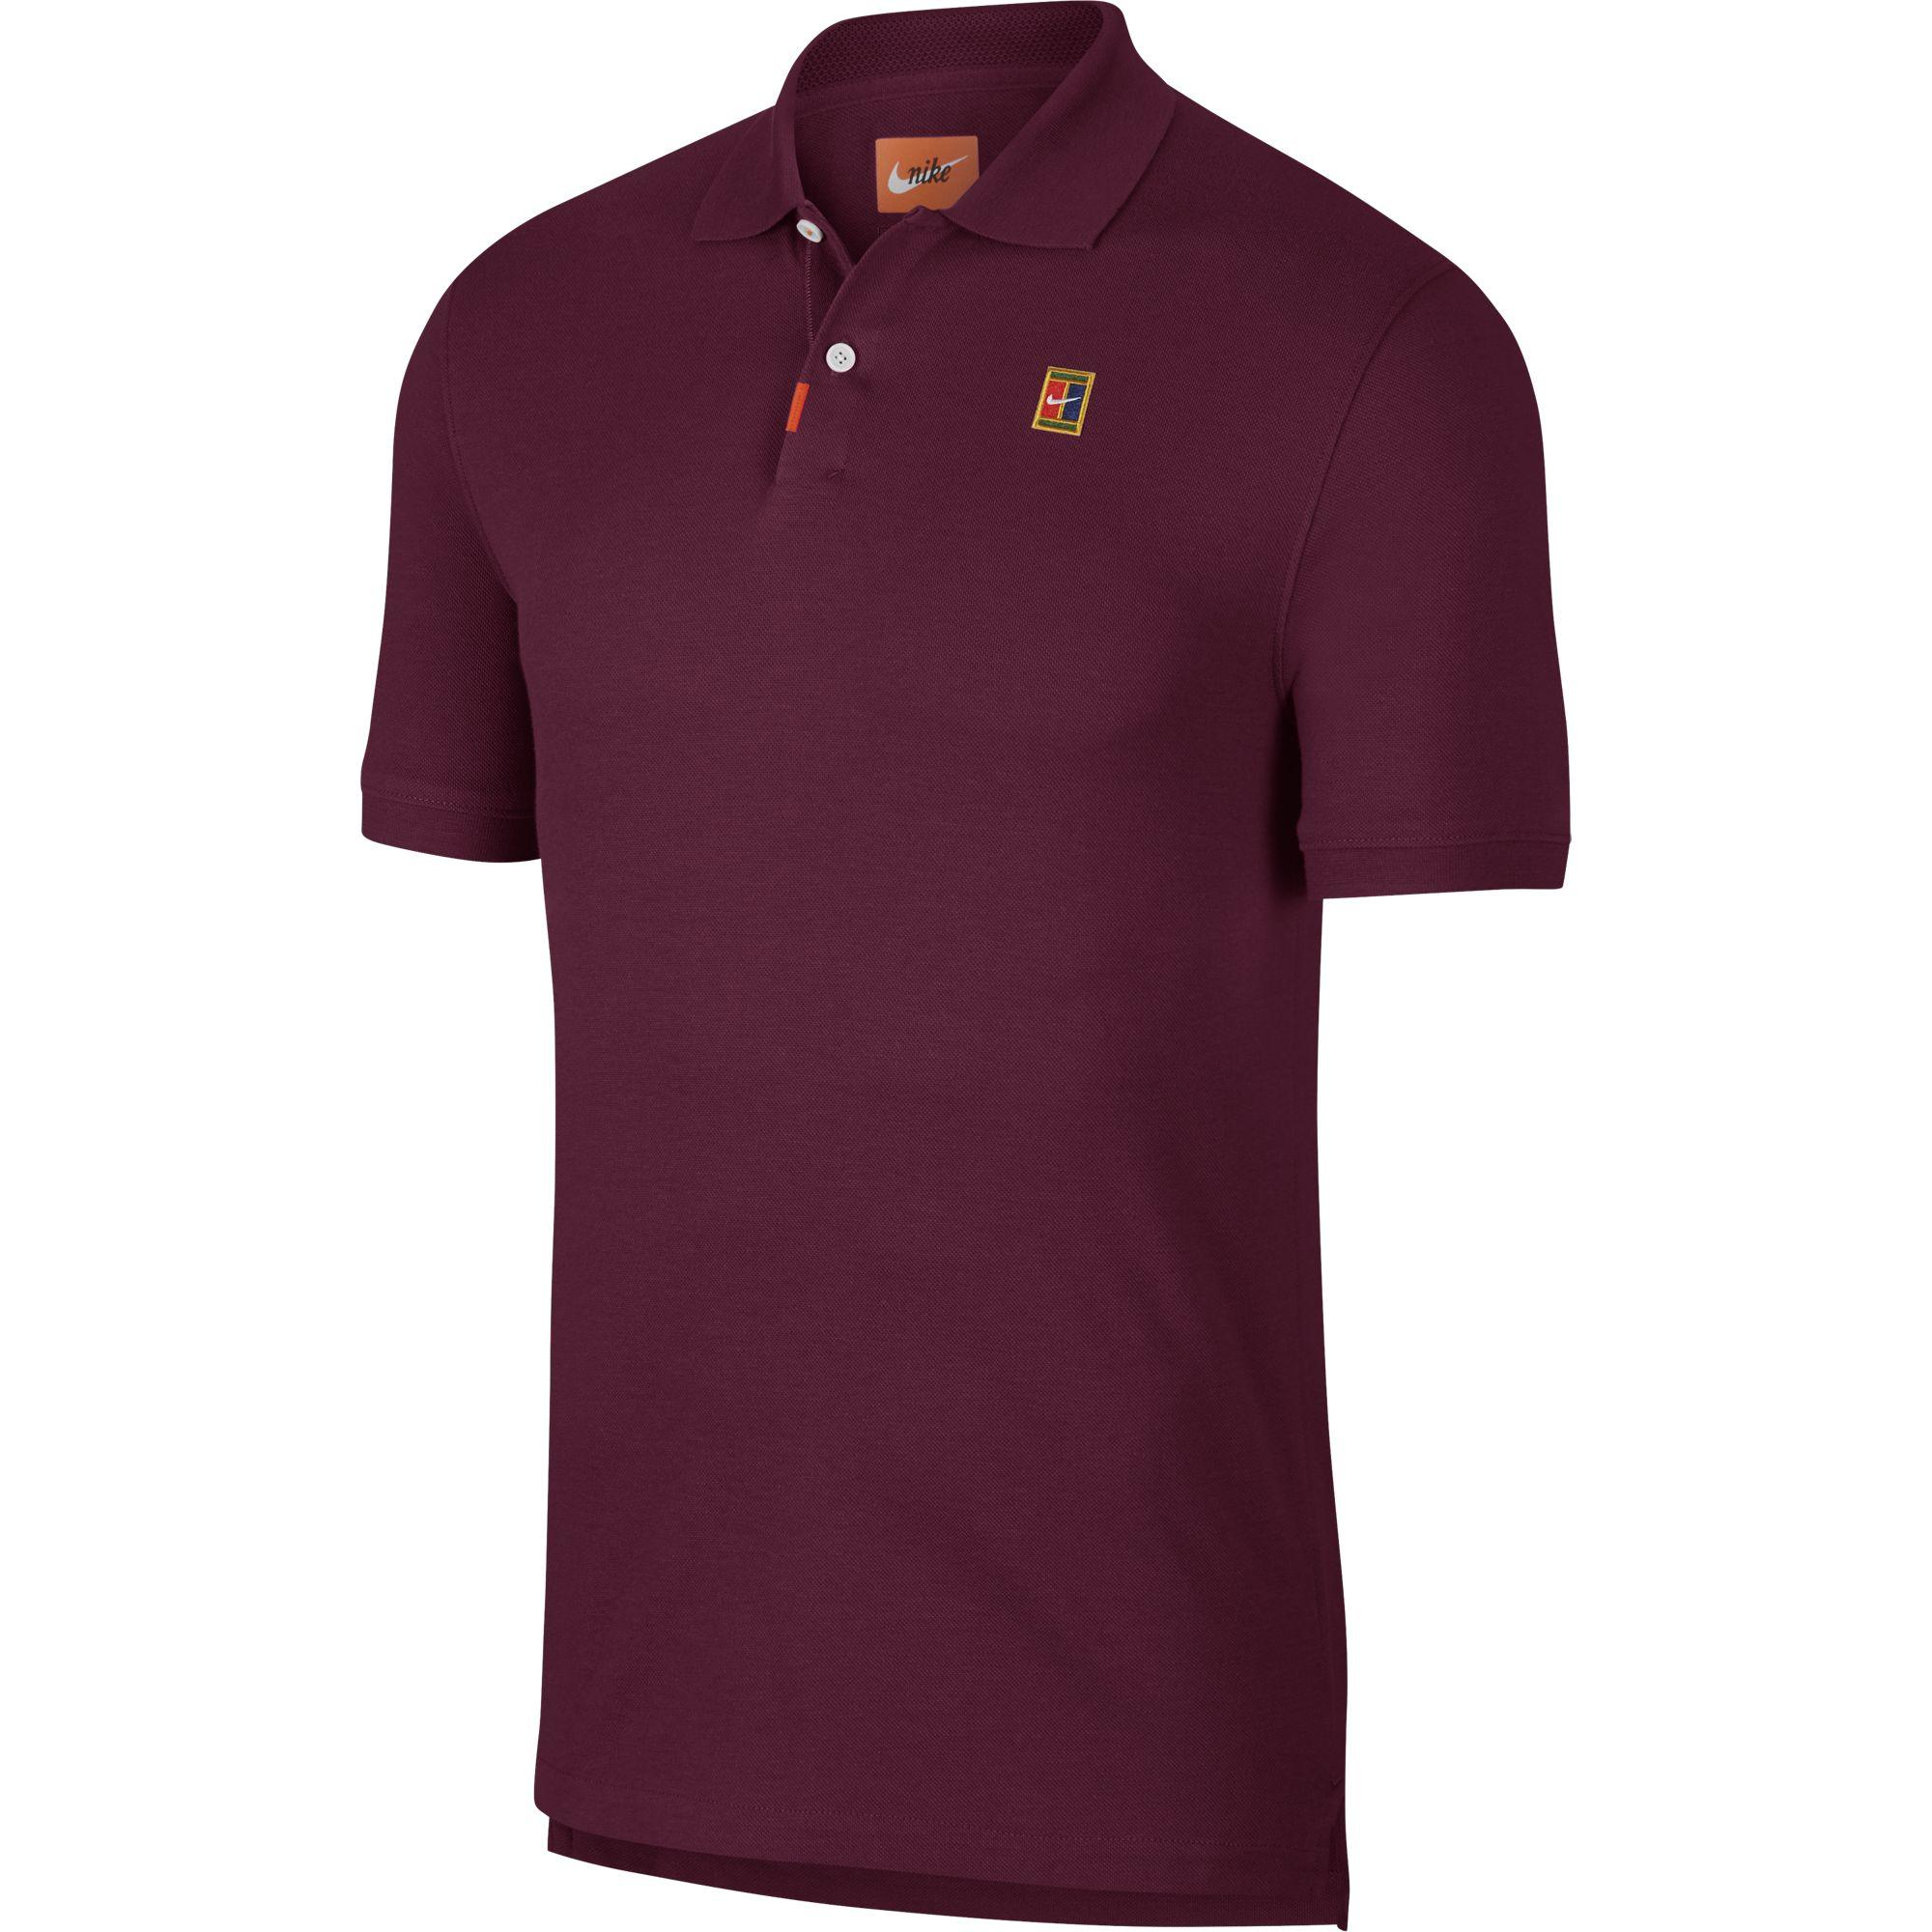 first look official site low priced Nike Mens Slim Fit Polo - Bordeaux - Tennisnuts.com